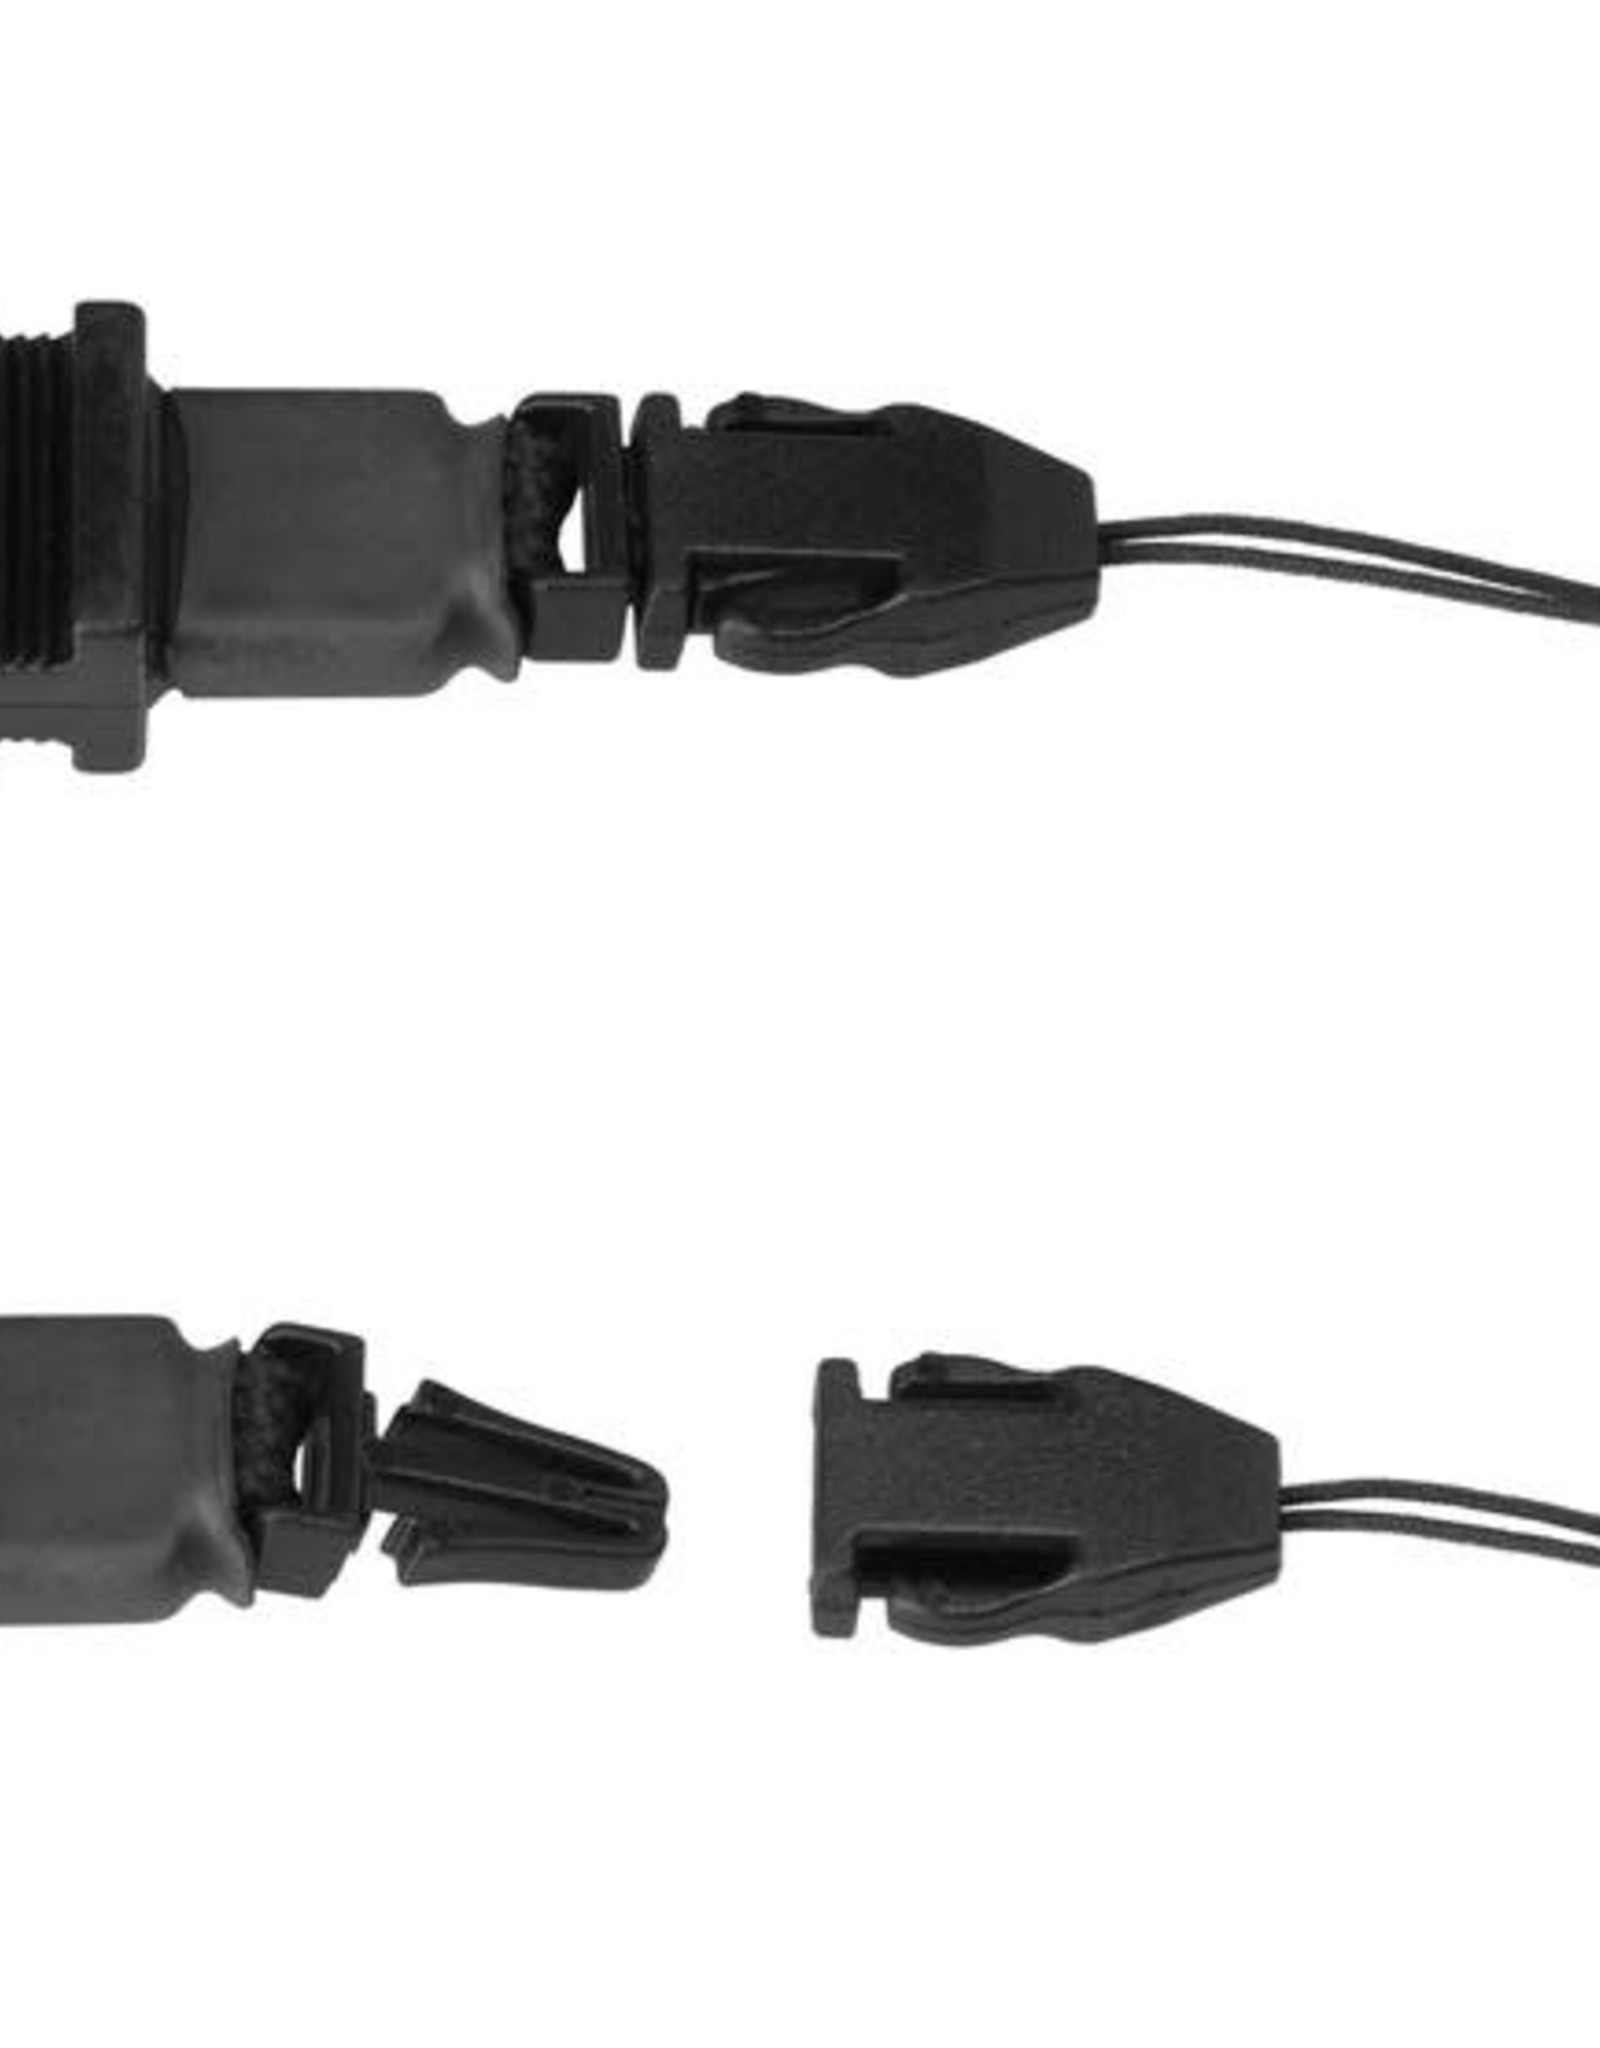 Tether Tools Tether Tools JerkStopper Camera Support